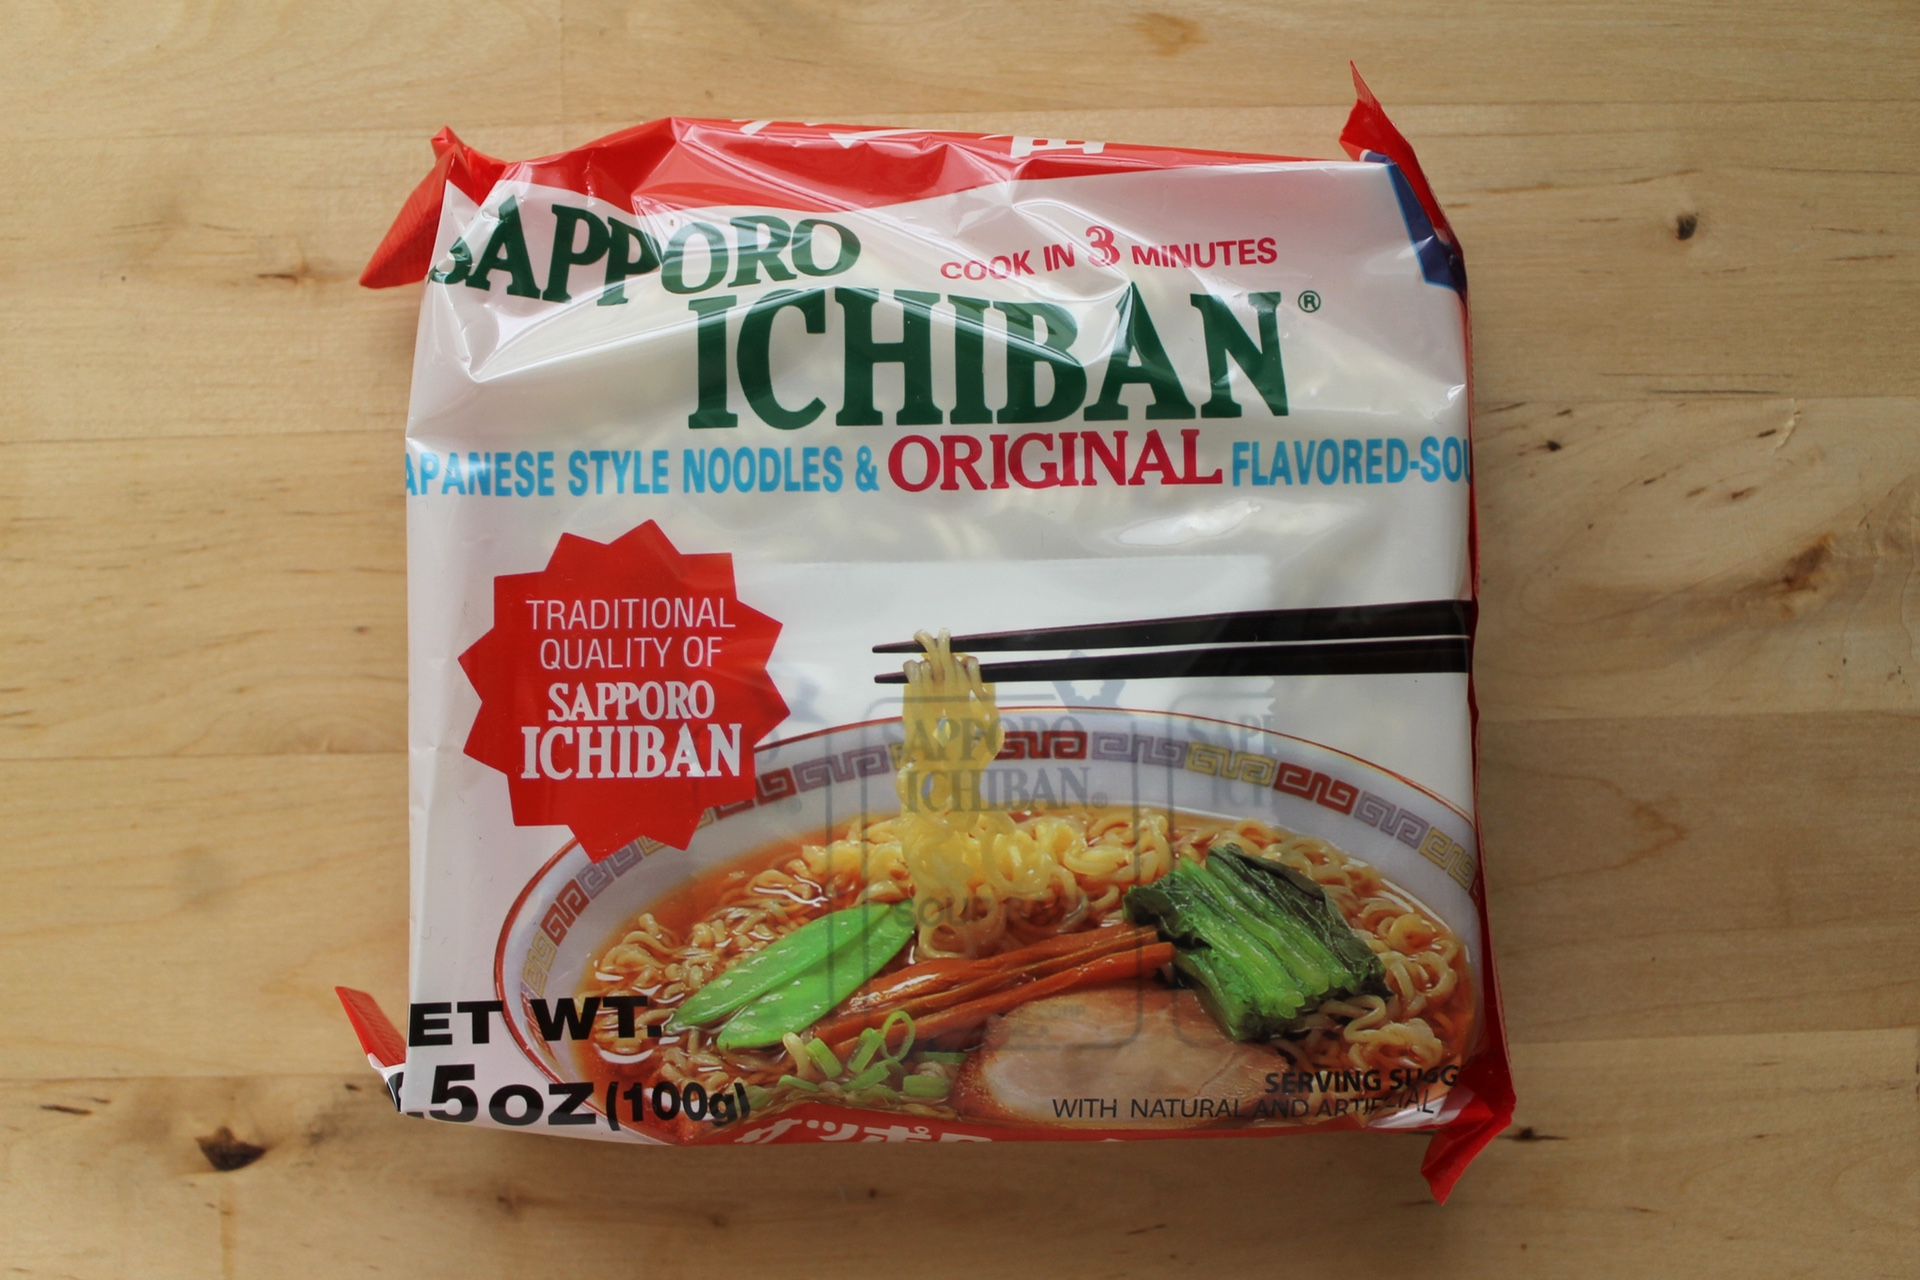 Sapporo Ichiban Japanese-Style Noodles & Original Flavored Soup.